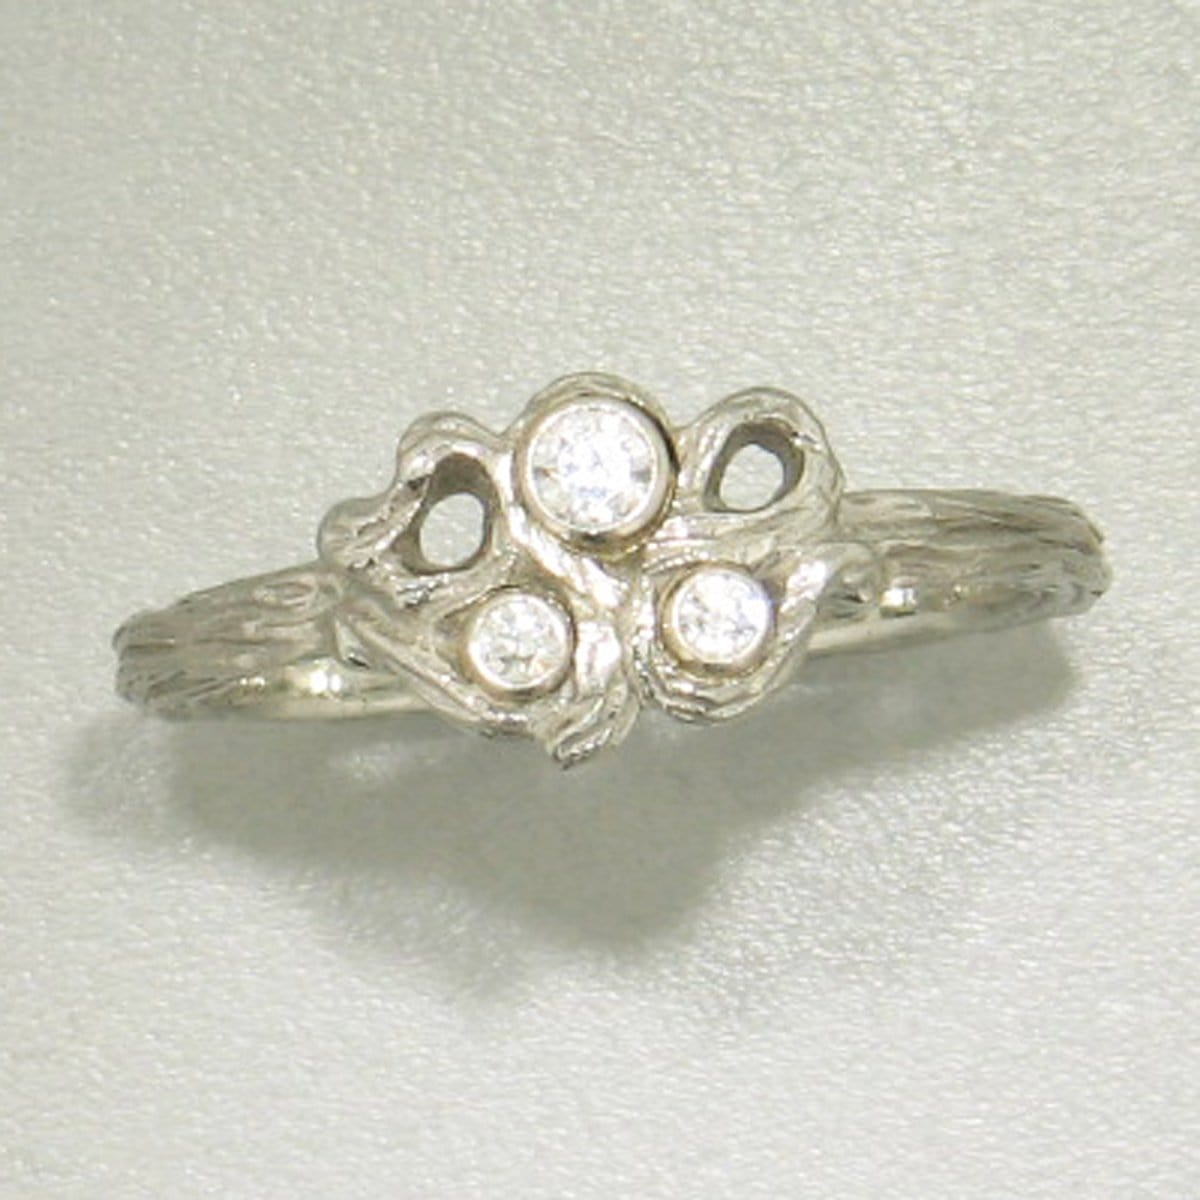 Shadow Gold & Diamond Ring - 40R8-5-1G-WG-Sarah Graham-Renee Taylor Gallery